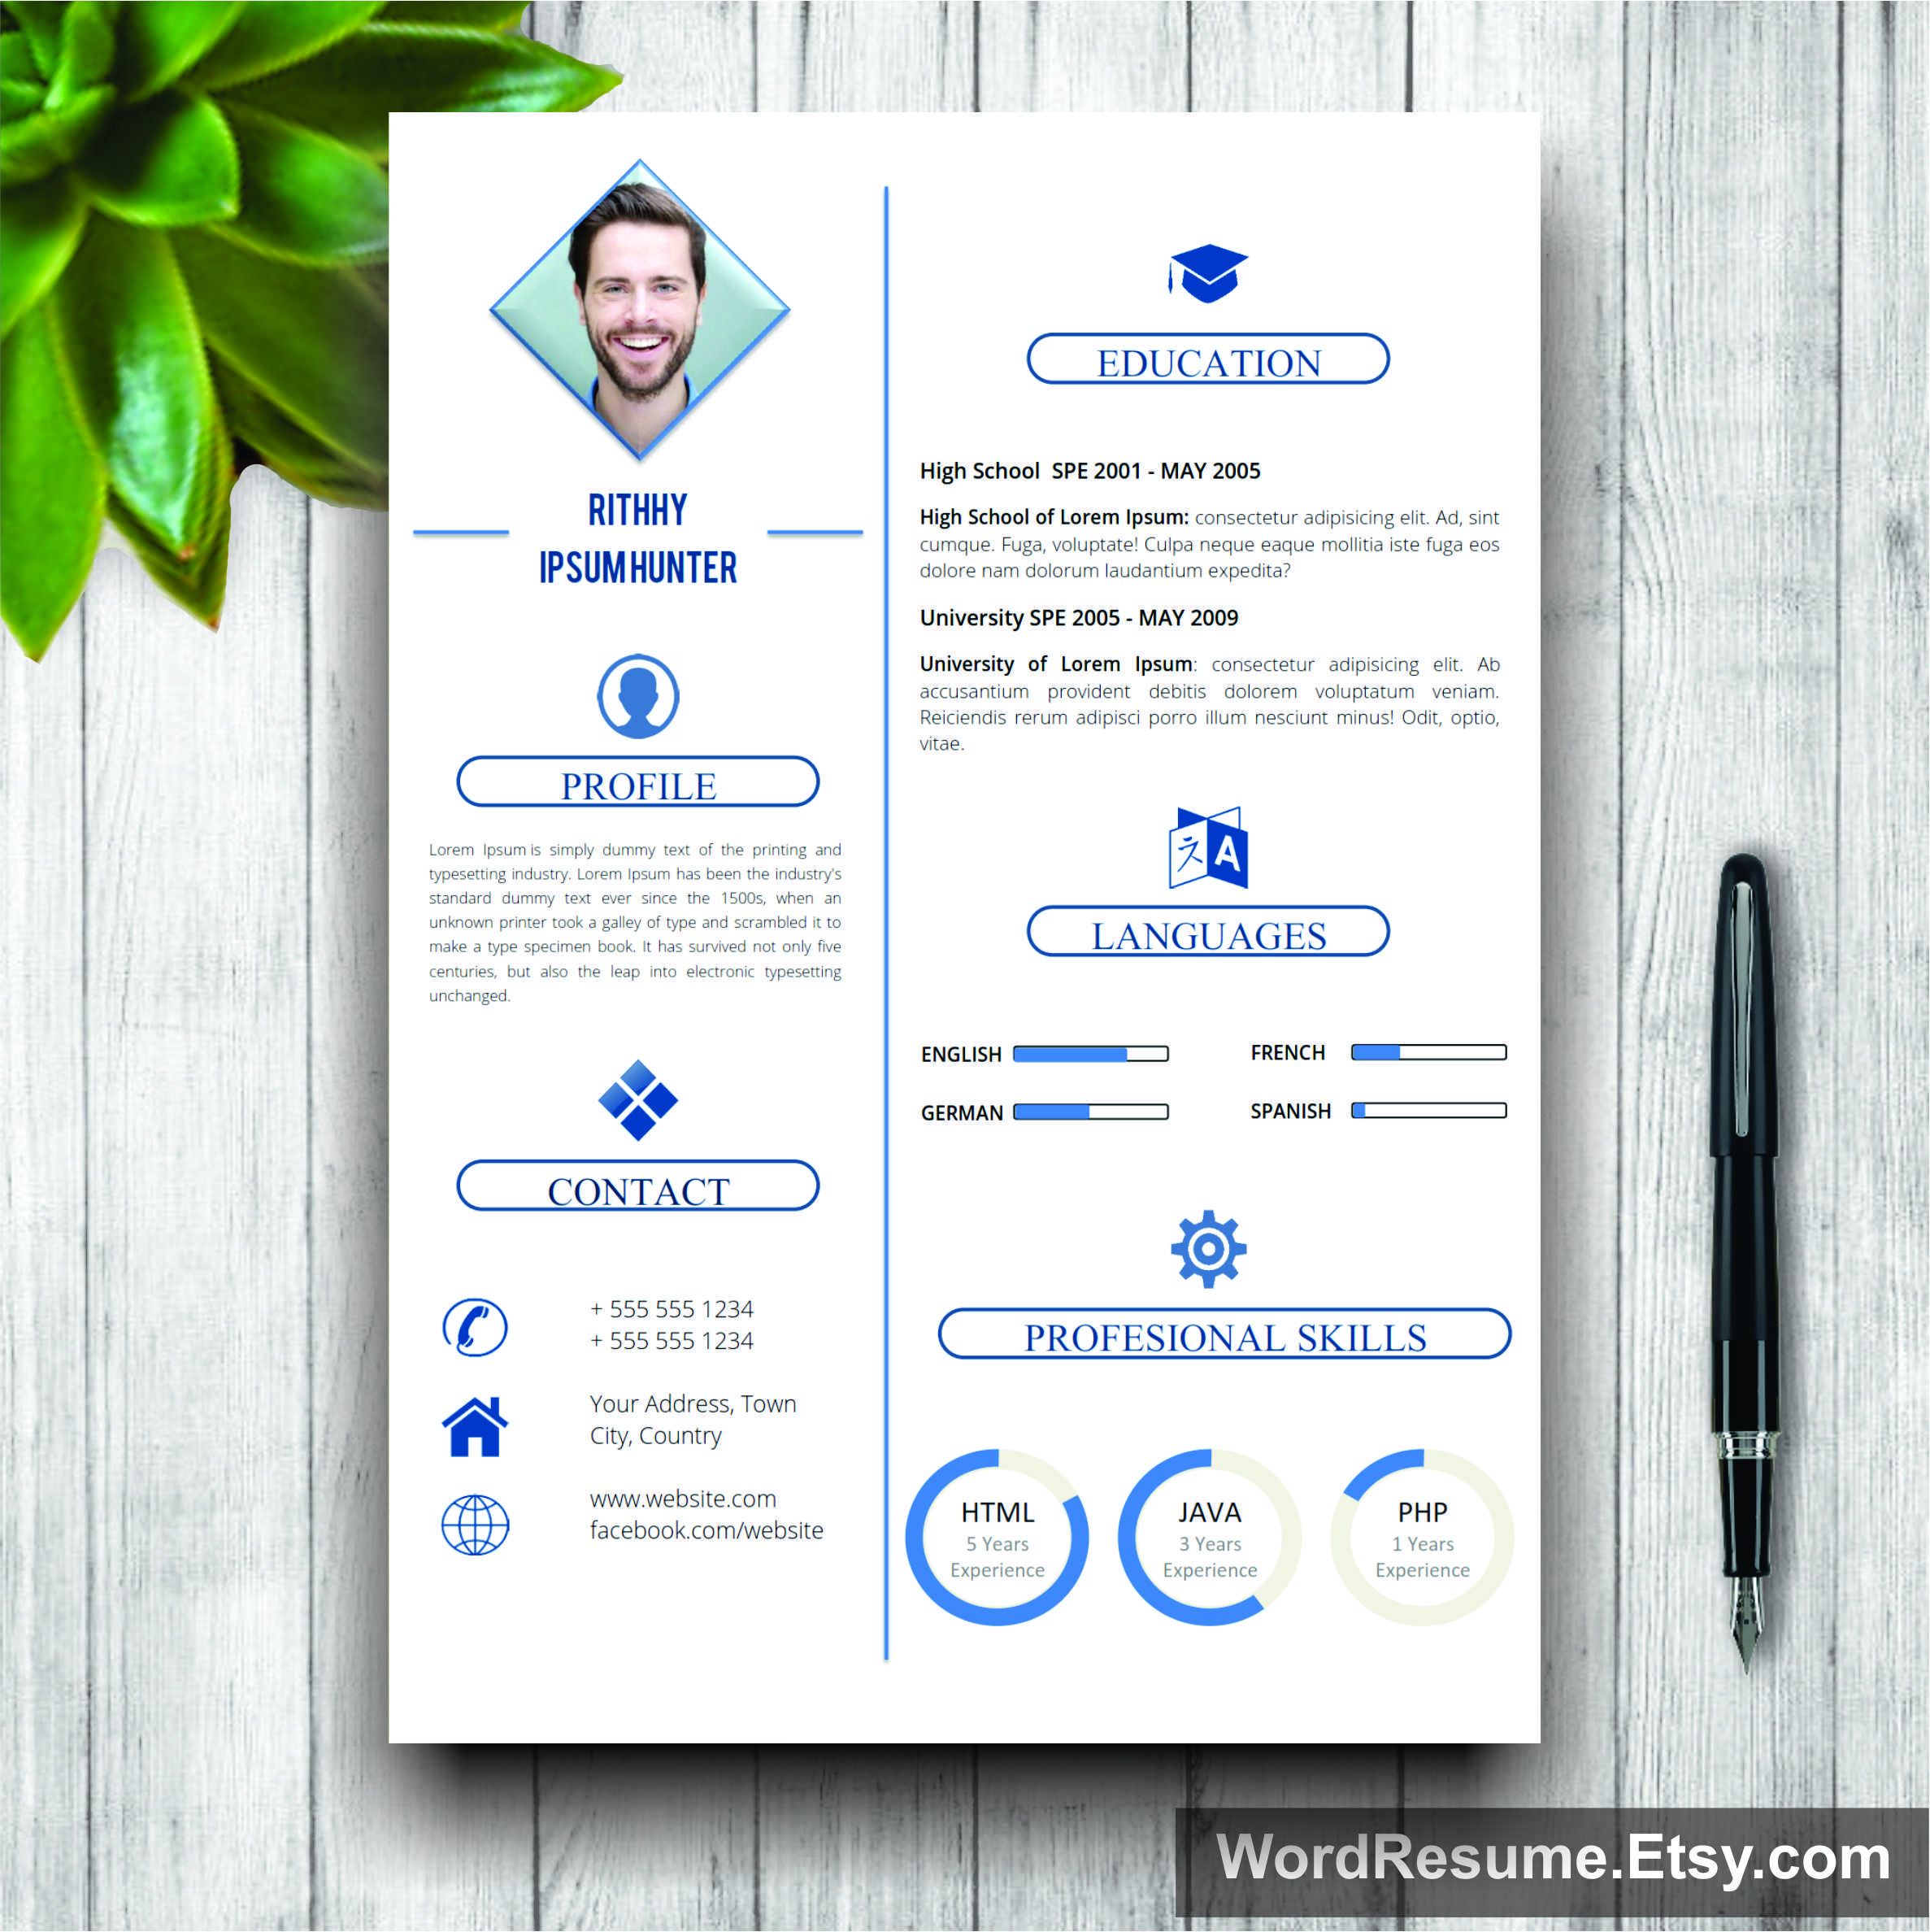 Simple Resume Template With Photo  Cover Letter  Rithhy Ipsum